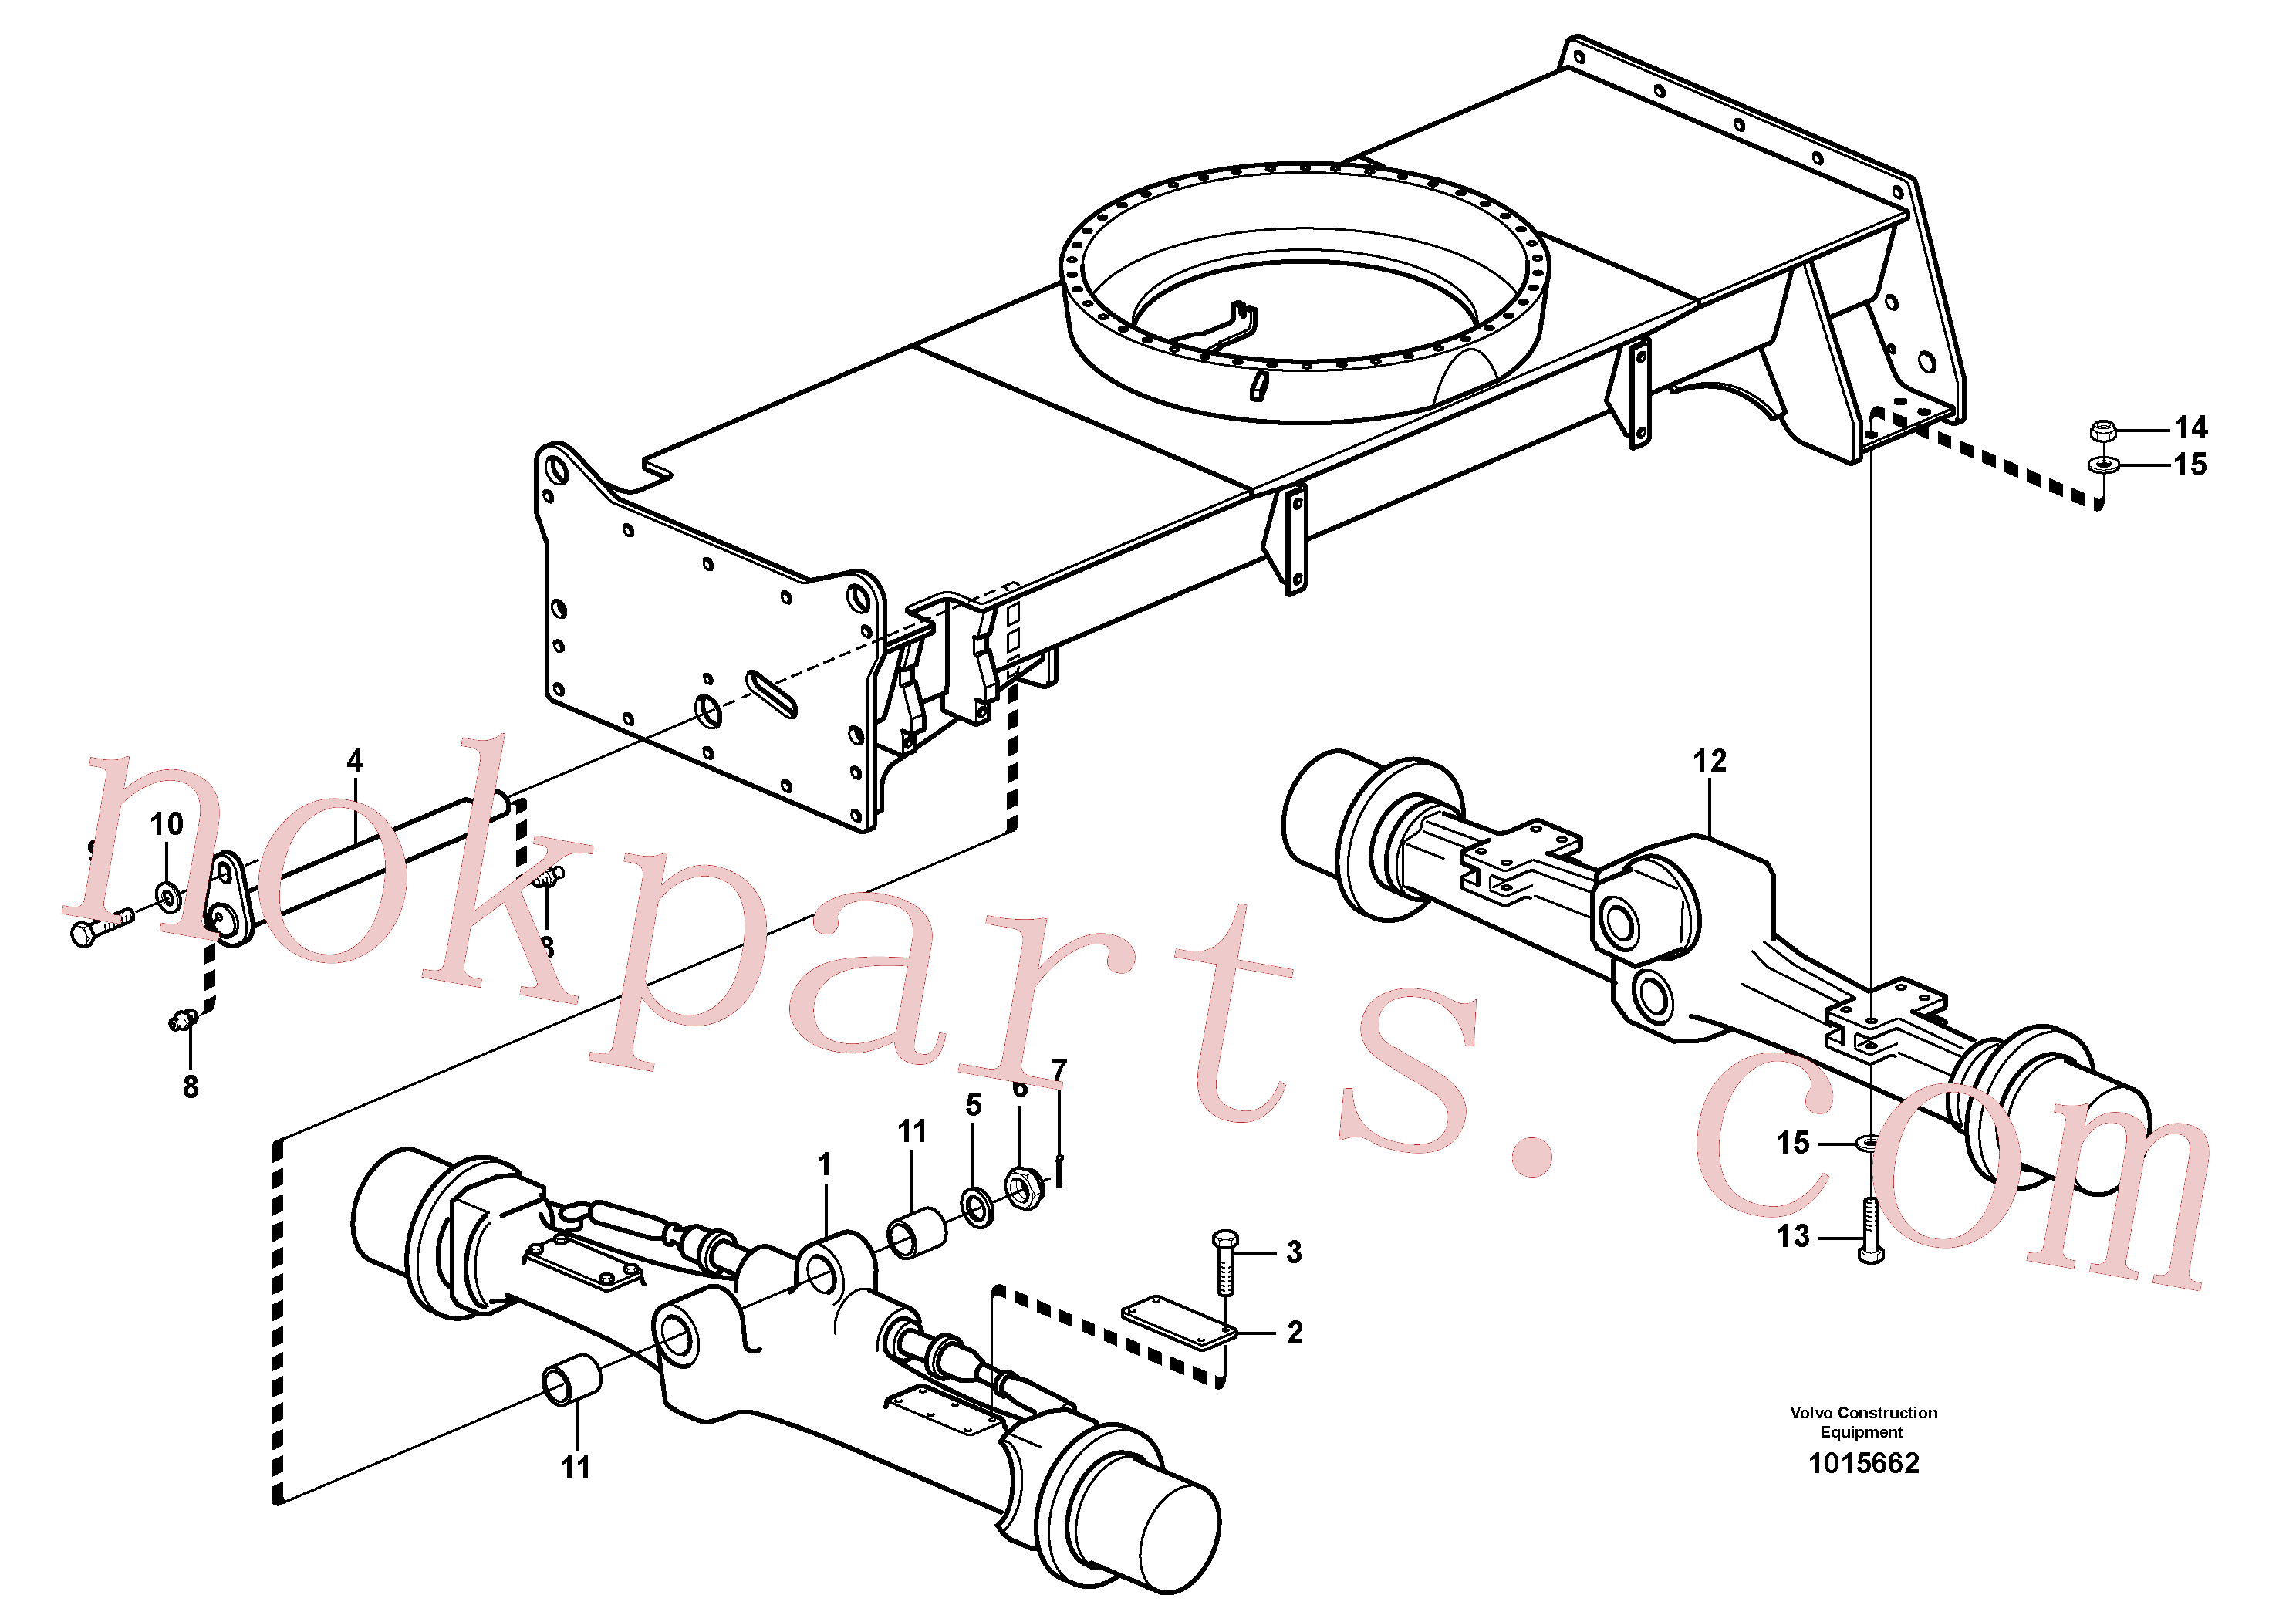 PJ4410041 for Volvo Planet axles with fitting parts(1015662 assembly)